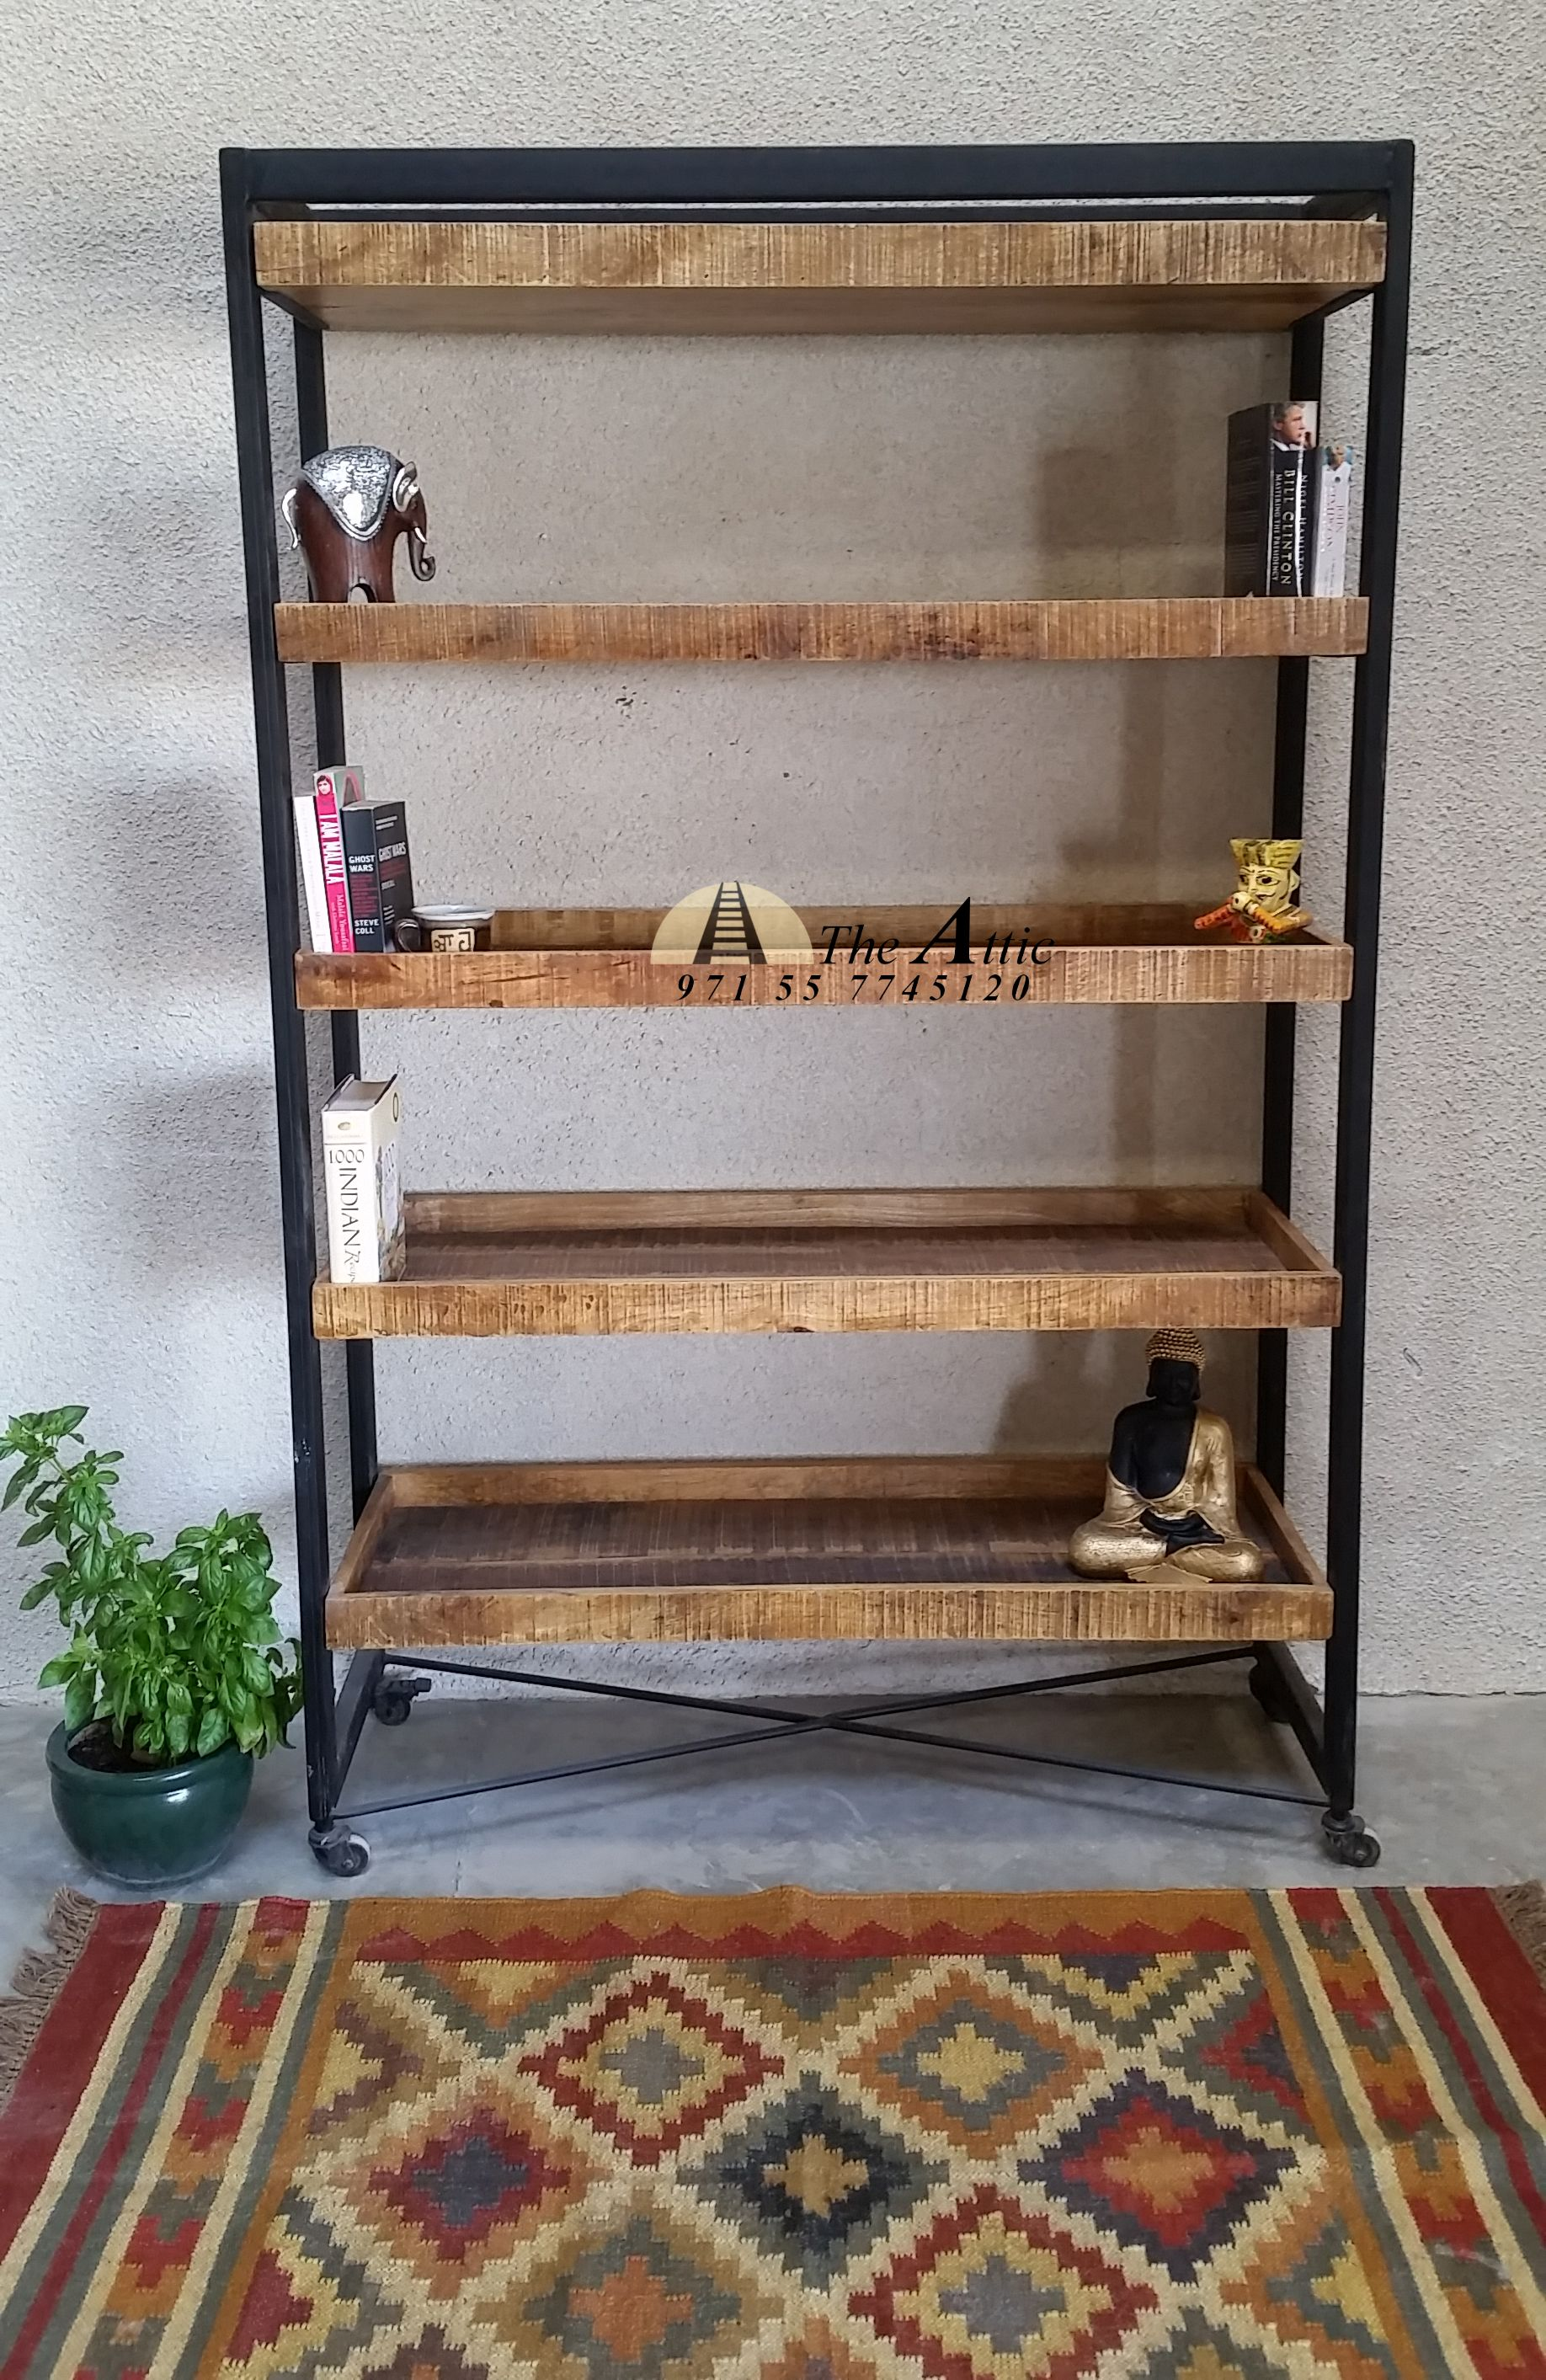 Industrial Bookcase With Rustic Wooden Tray Shelves And Castor Wheels Industrial Bookshelf Rustic Wood Metal T Metal Bookshelf Wood And Metal Rustic Wood